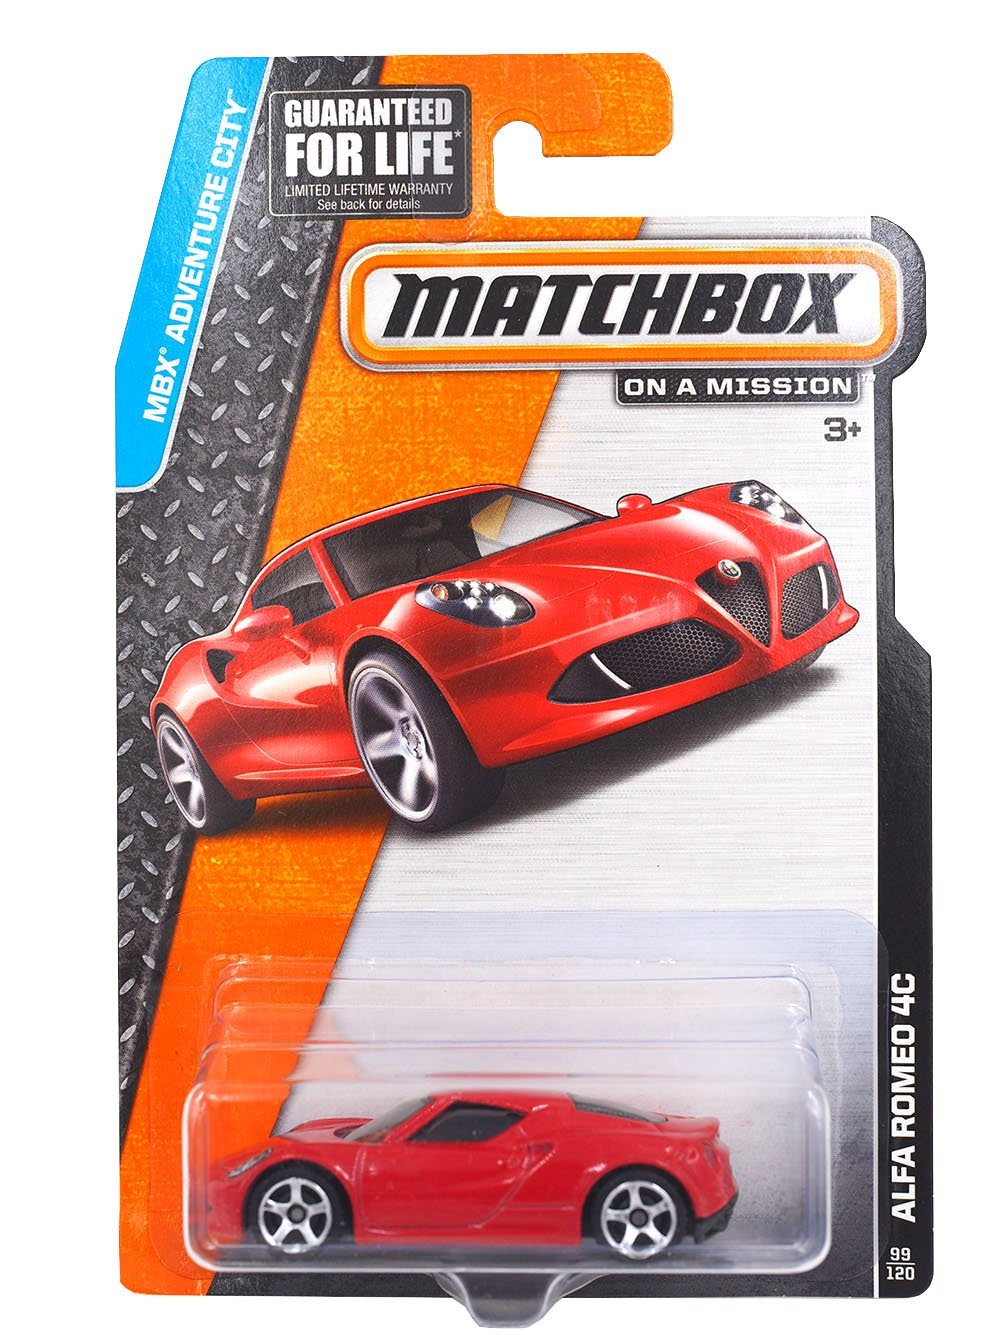 MBX Adventure City Alfa Romeo 4C 99 120, MBX Adventure City By Matchbox Ship from US by